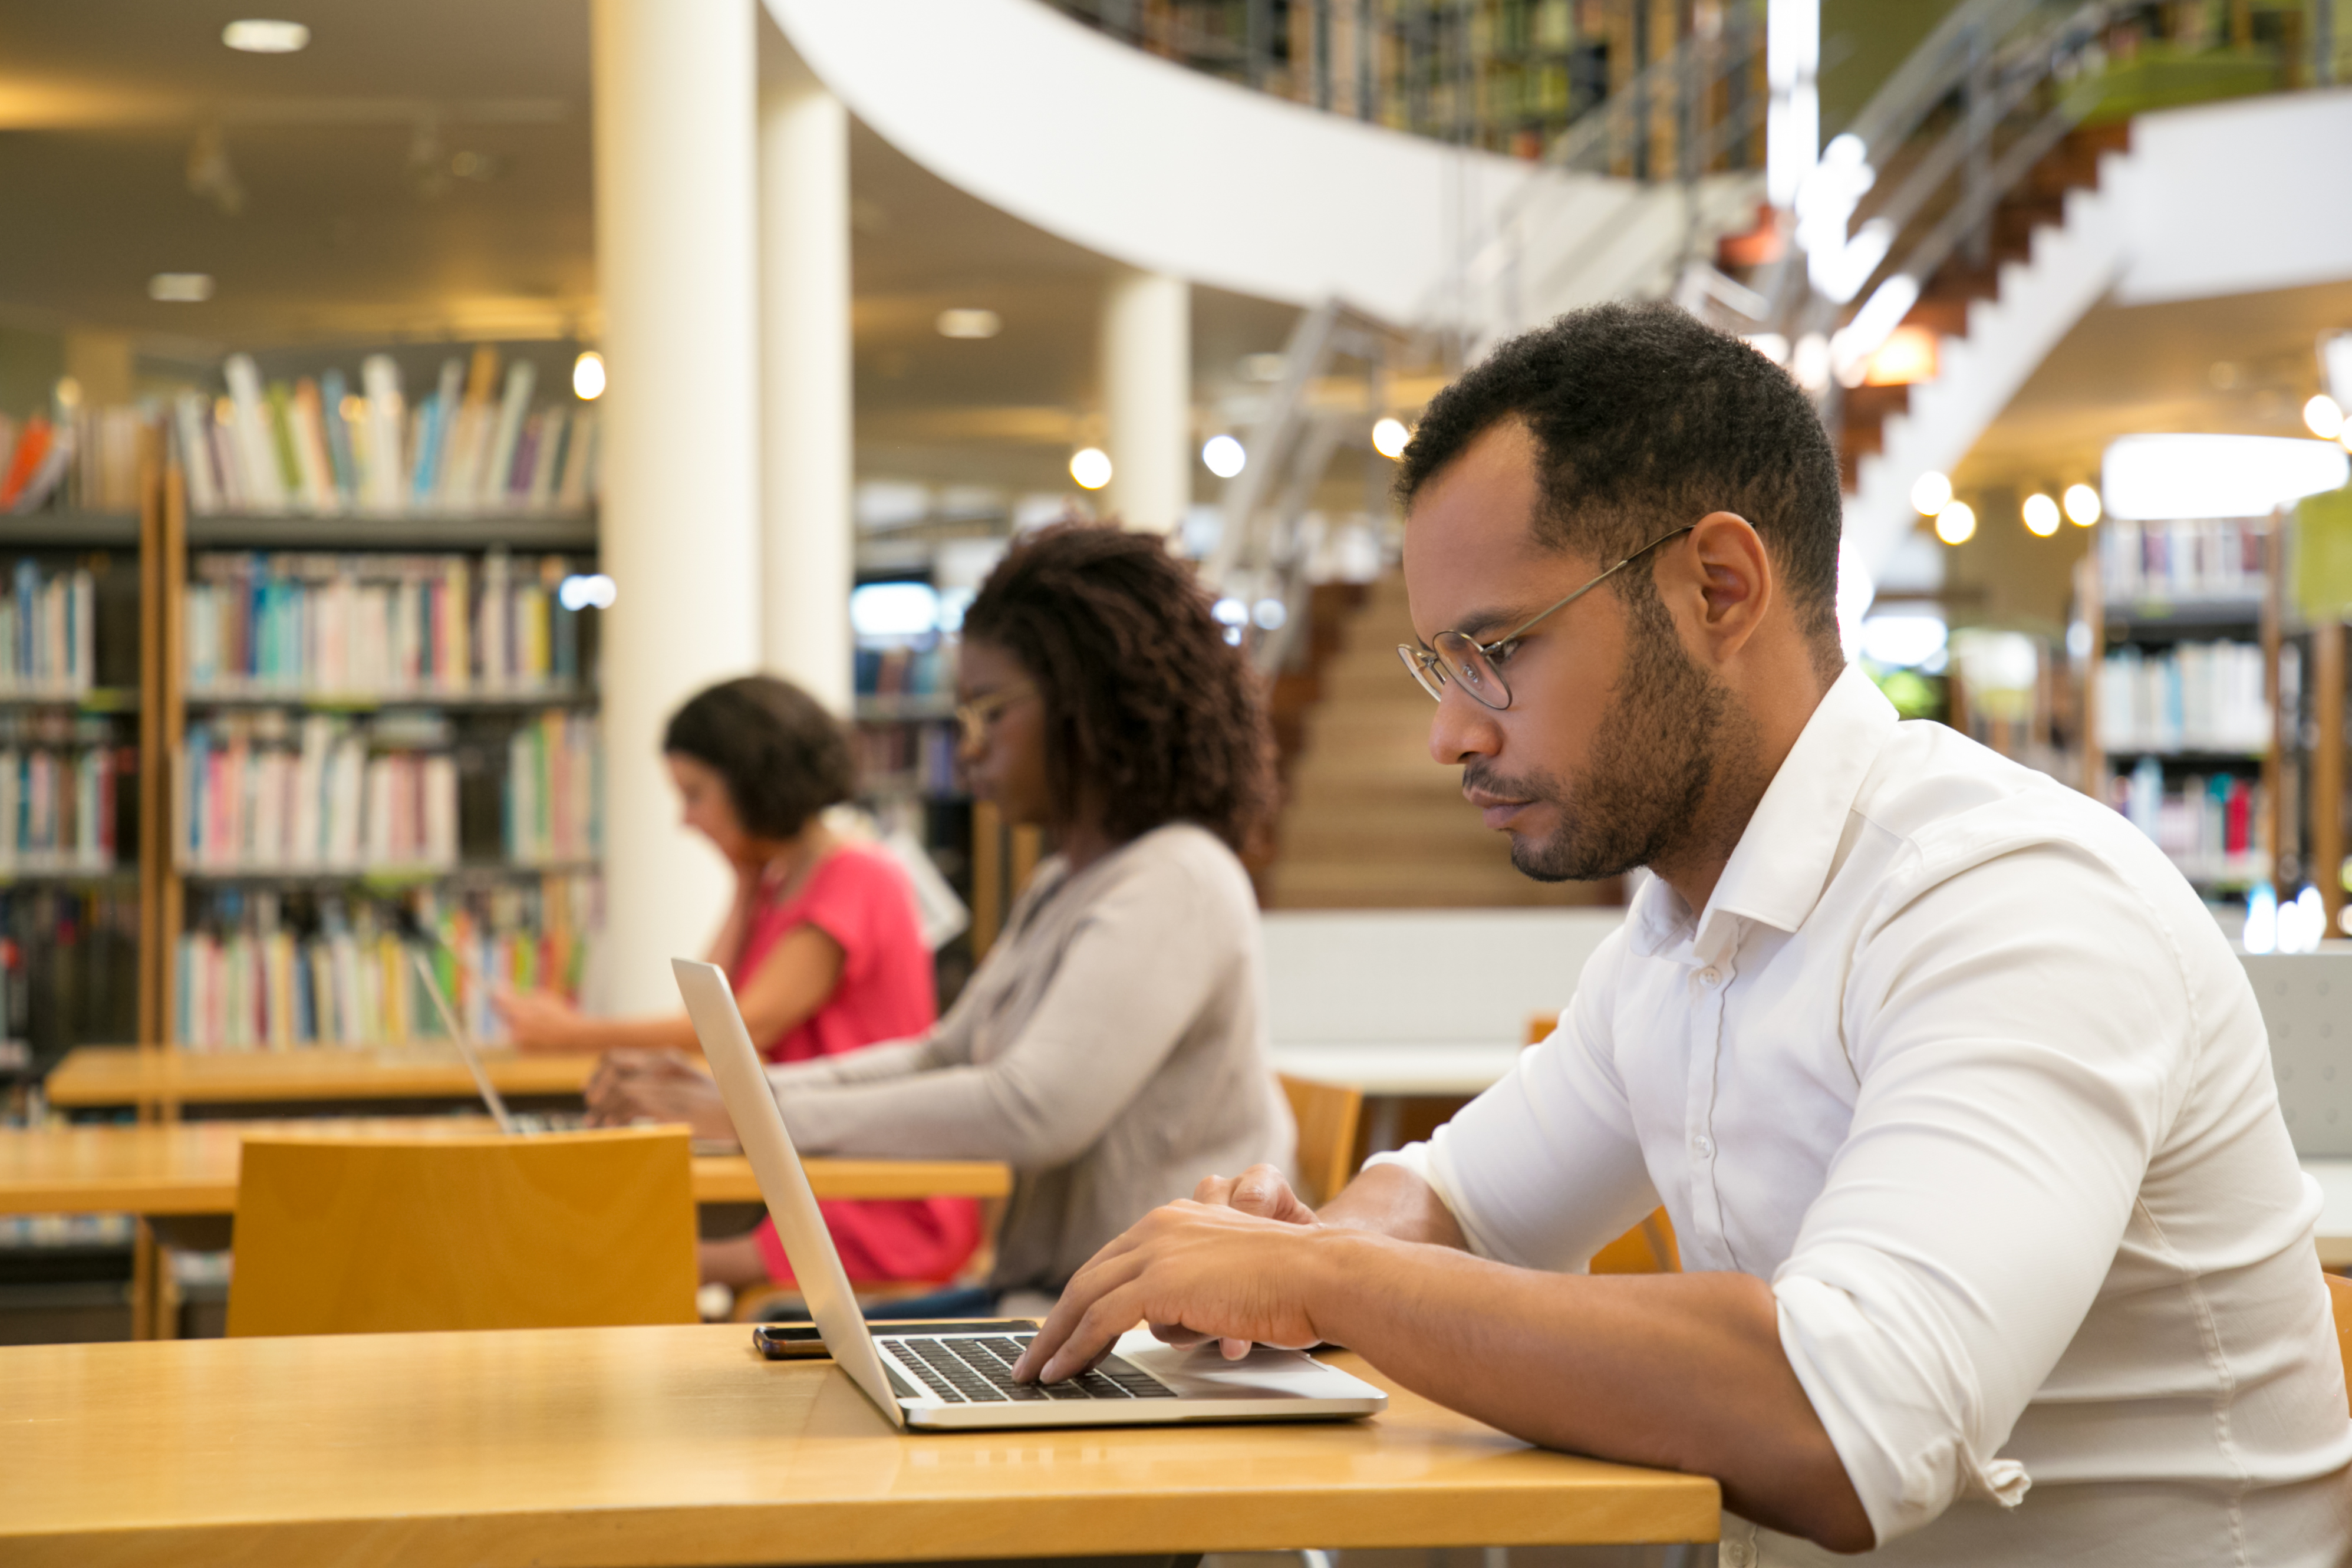 mix-raced-trainees-working-on-computer-in-public-library